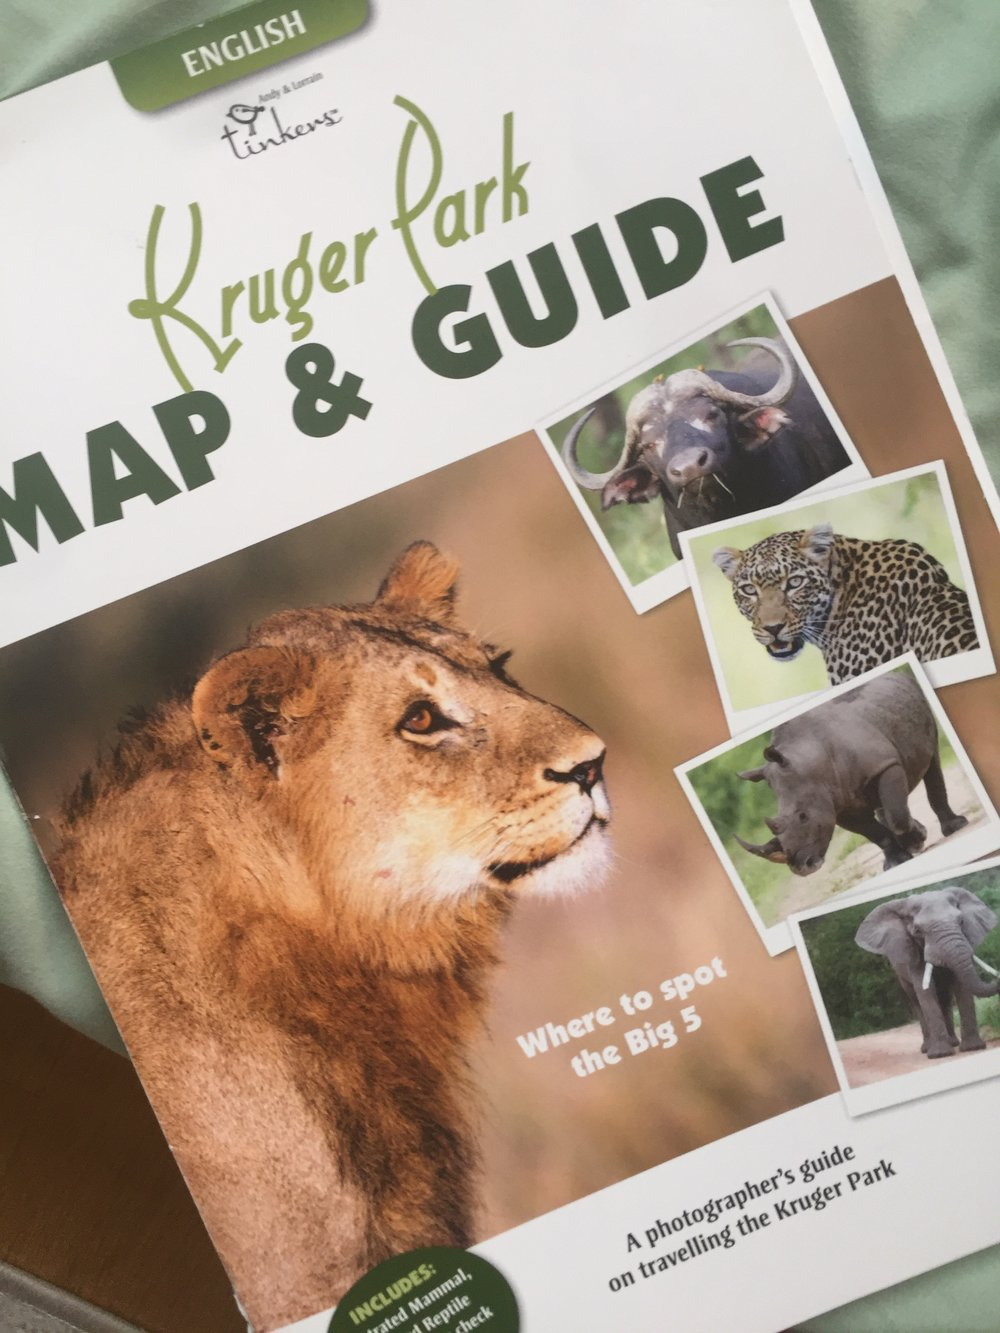 the best map for navigating Kruger